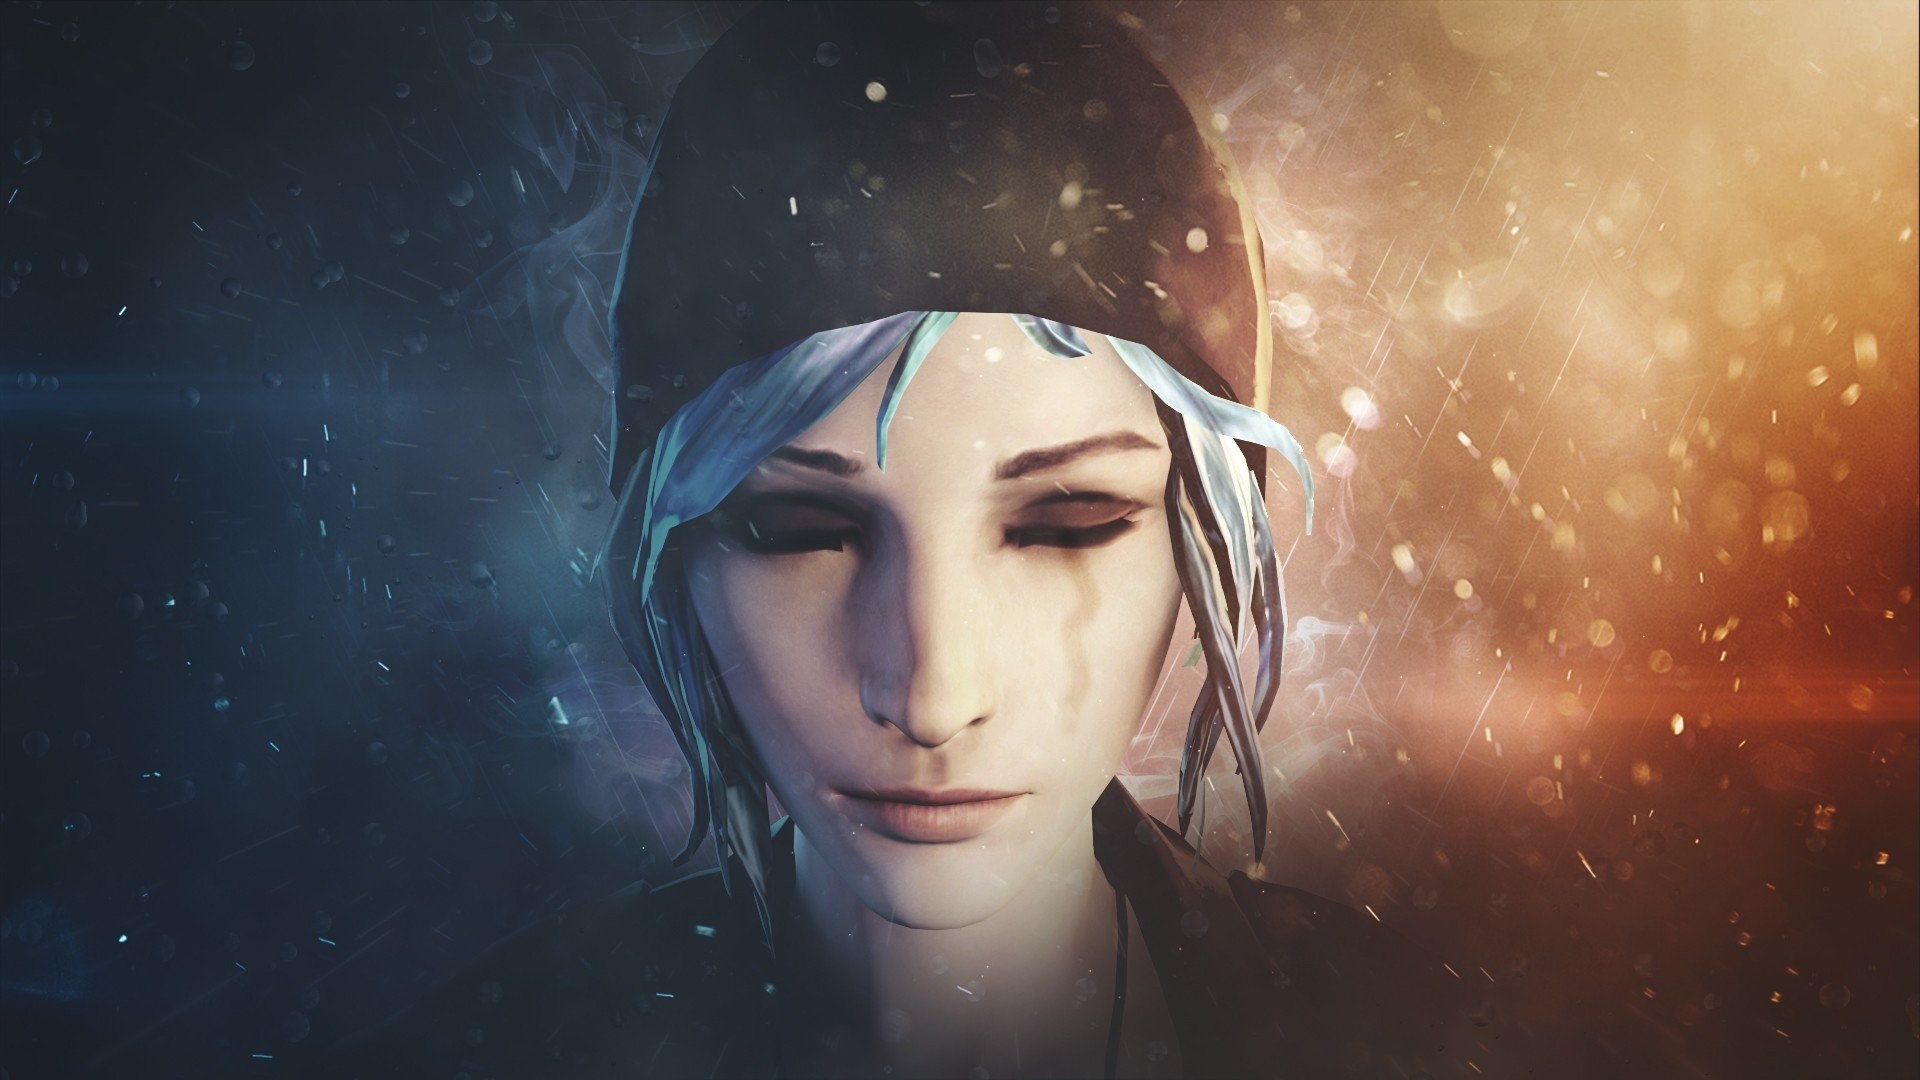 Res: 1920x1080, Life Is Strange, Chloe Price Wallpapers HD / Desktop and Mobile Backgrounds